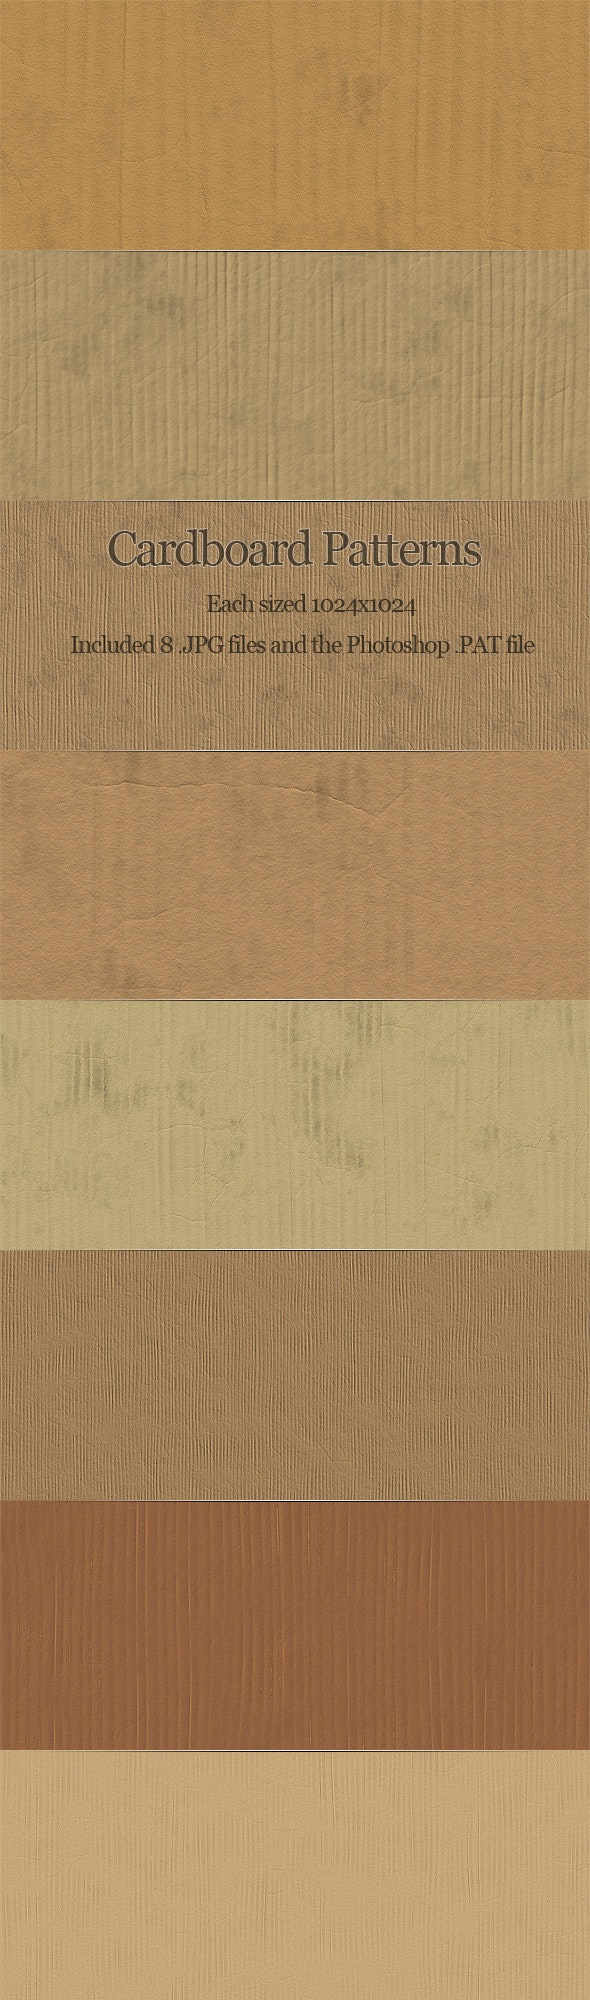 Cardboard Patterns - Miscellaneous Textures / Fills / Patterns